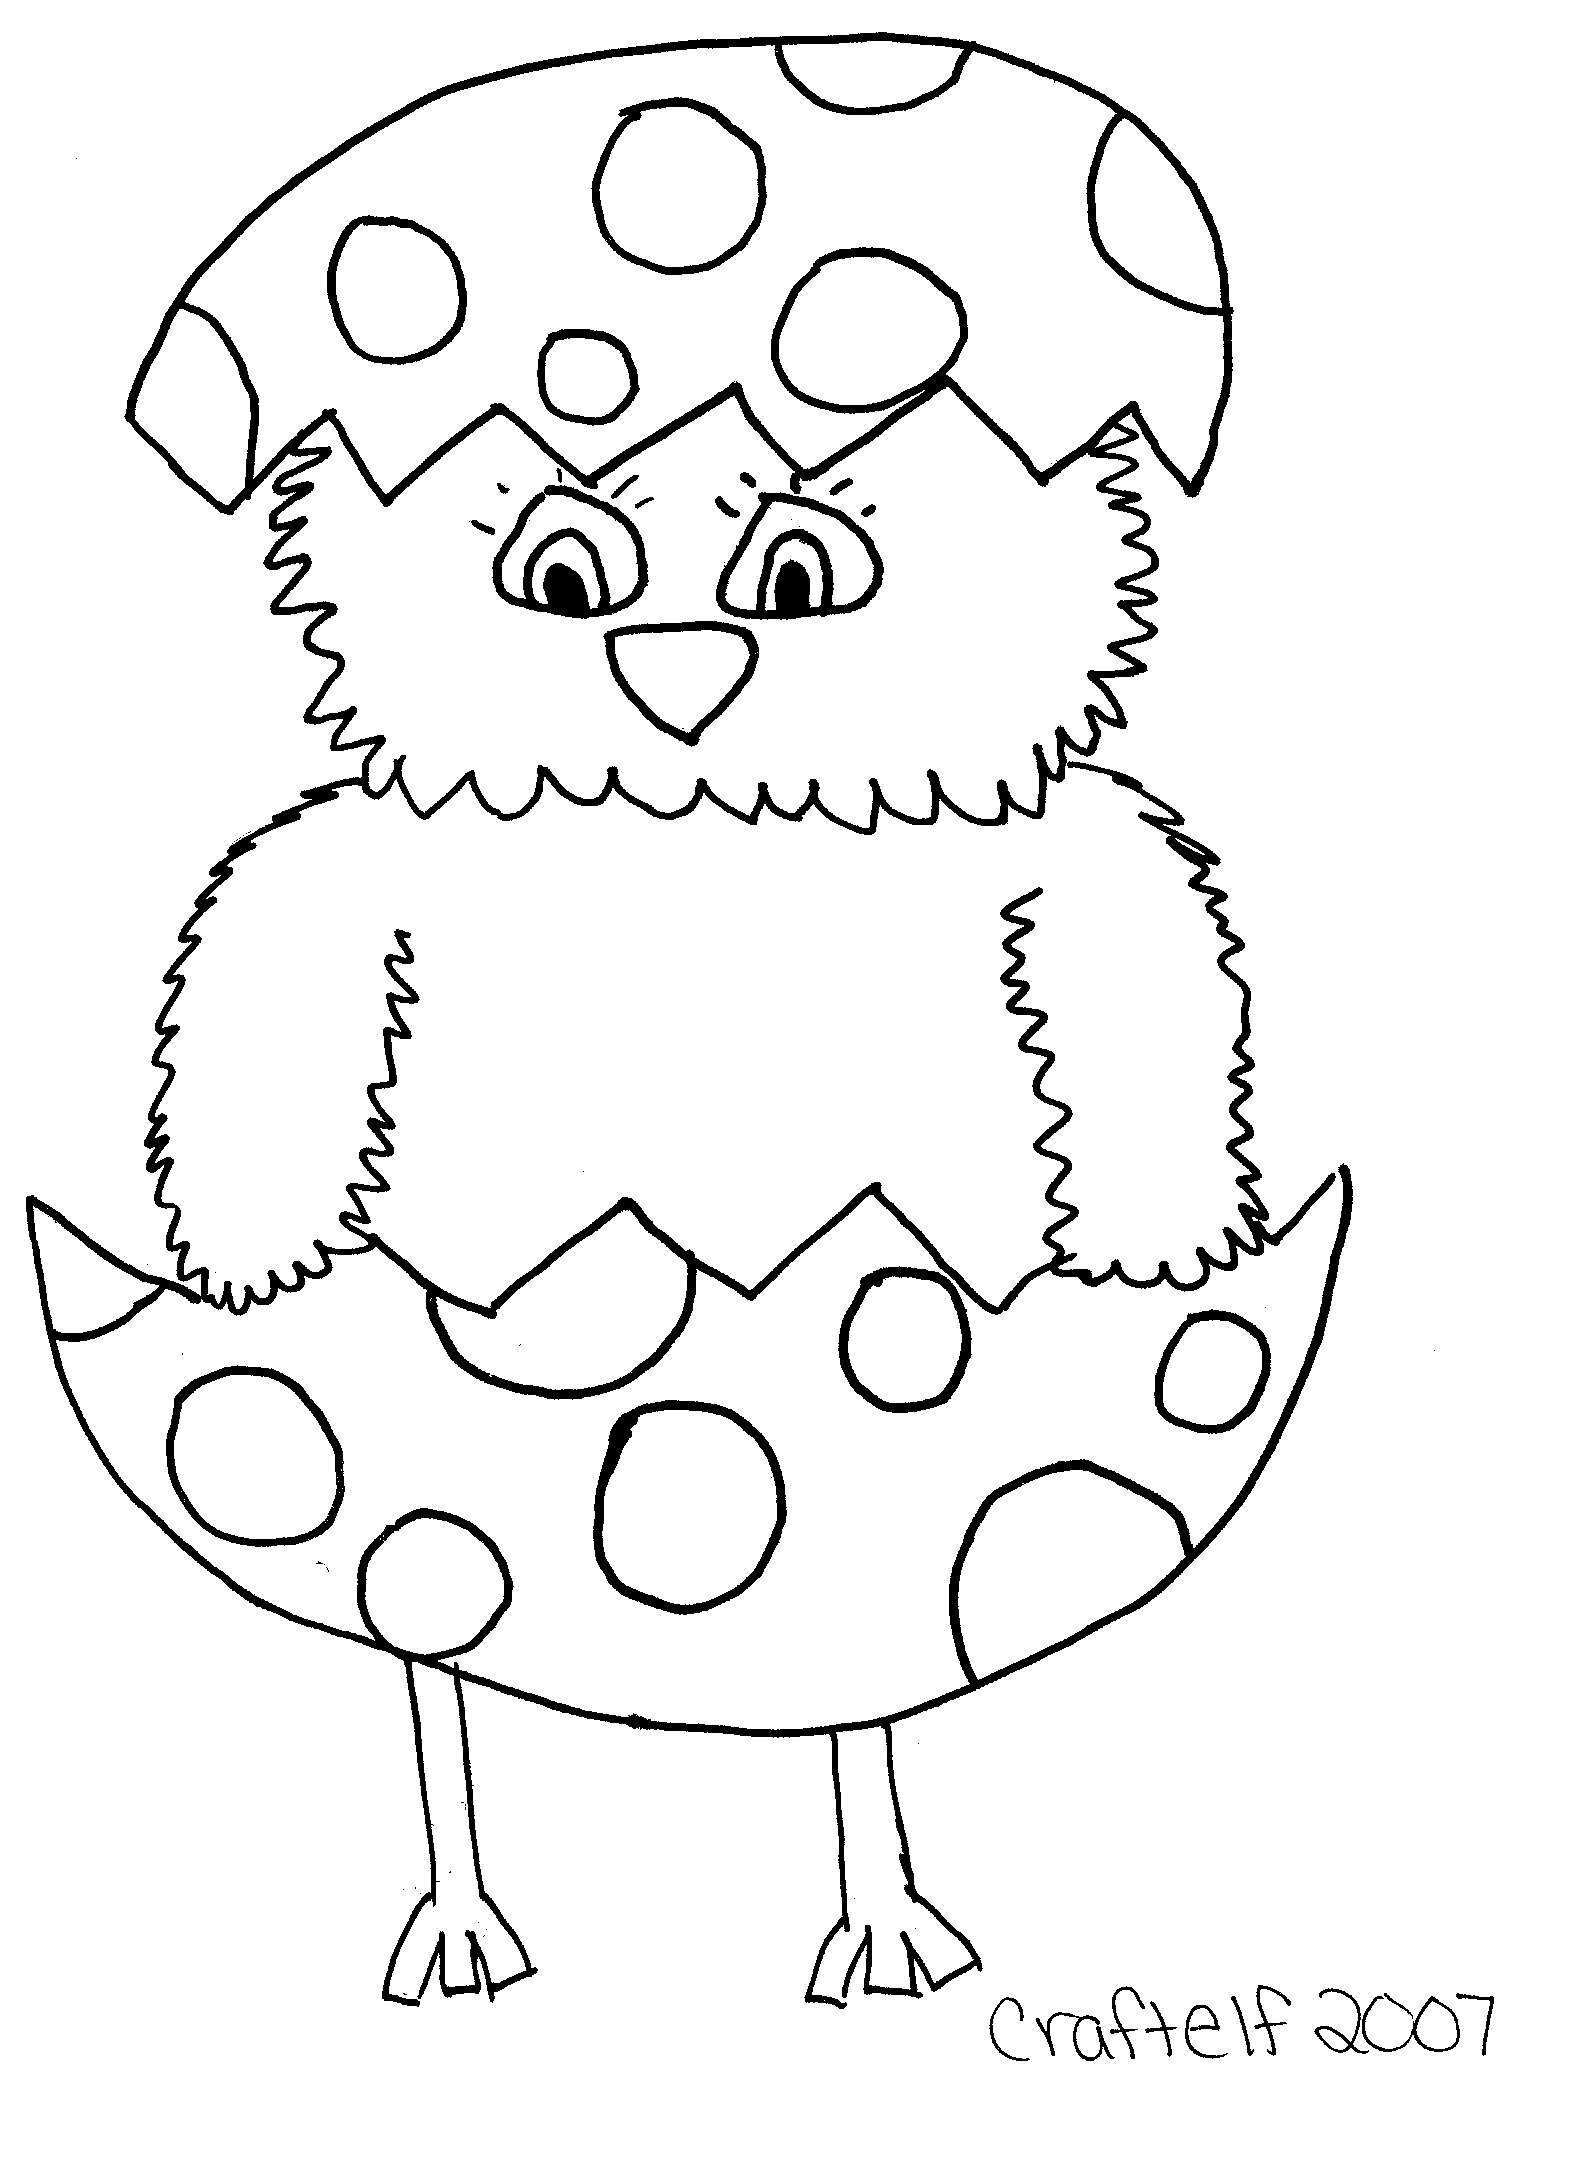 Coloring Pages : Religeous Easter Coloring Pages Printable Free For - Free Printable Easter Coloring Pages For Toddlers